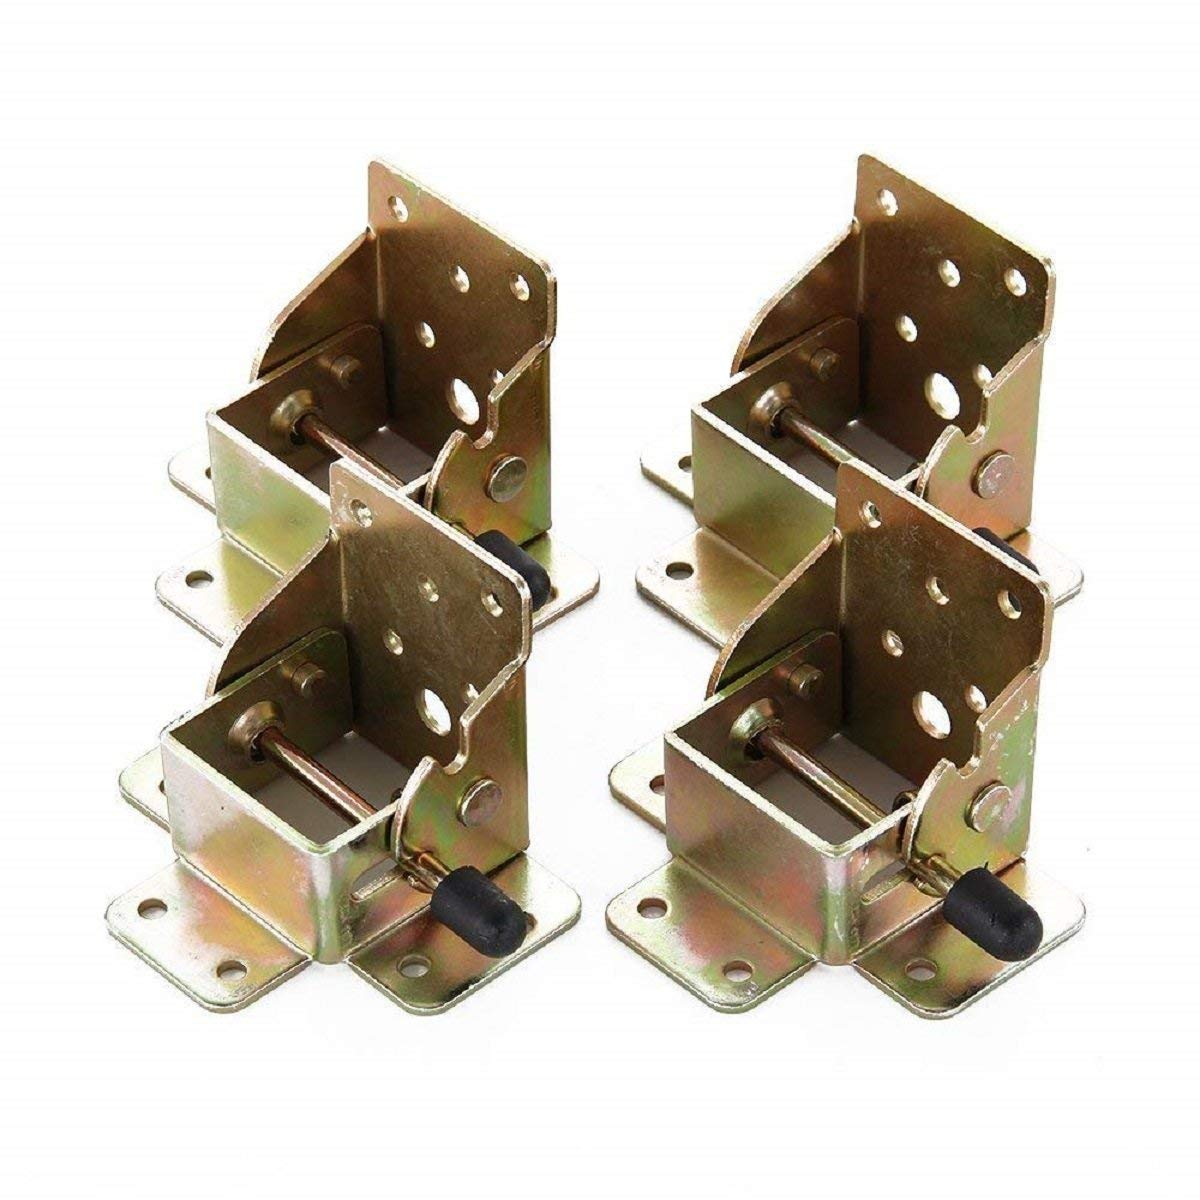 4 X Foldable Extended Table And Chair Leg Support Furniture Hardware Accessories